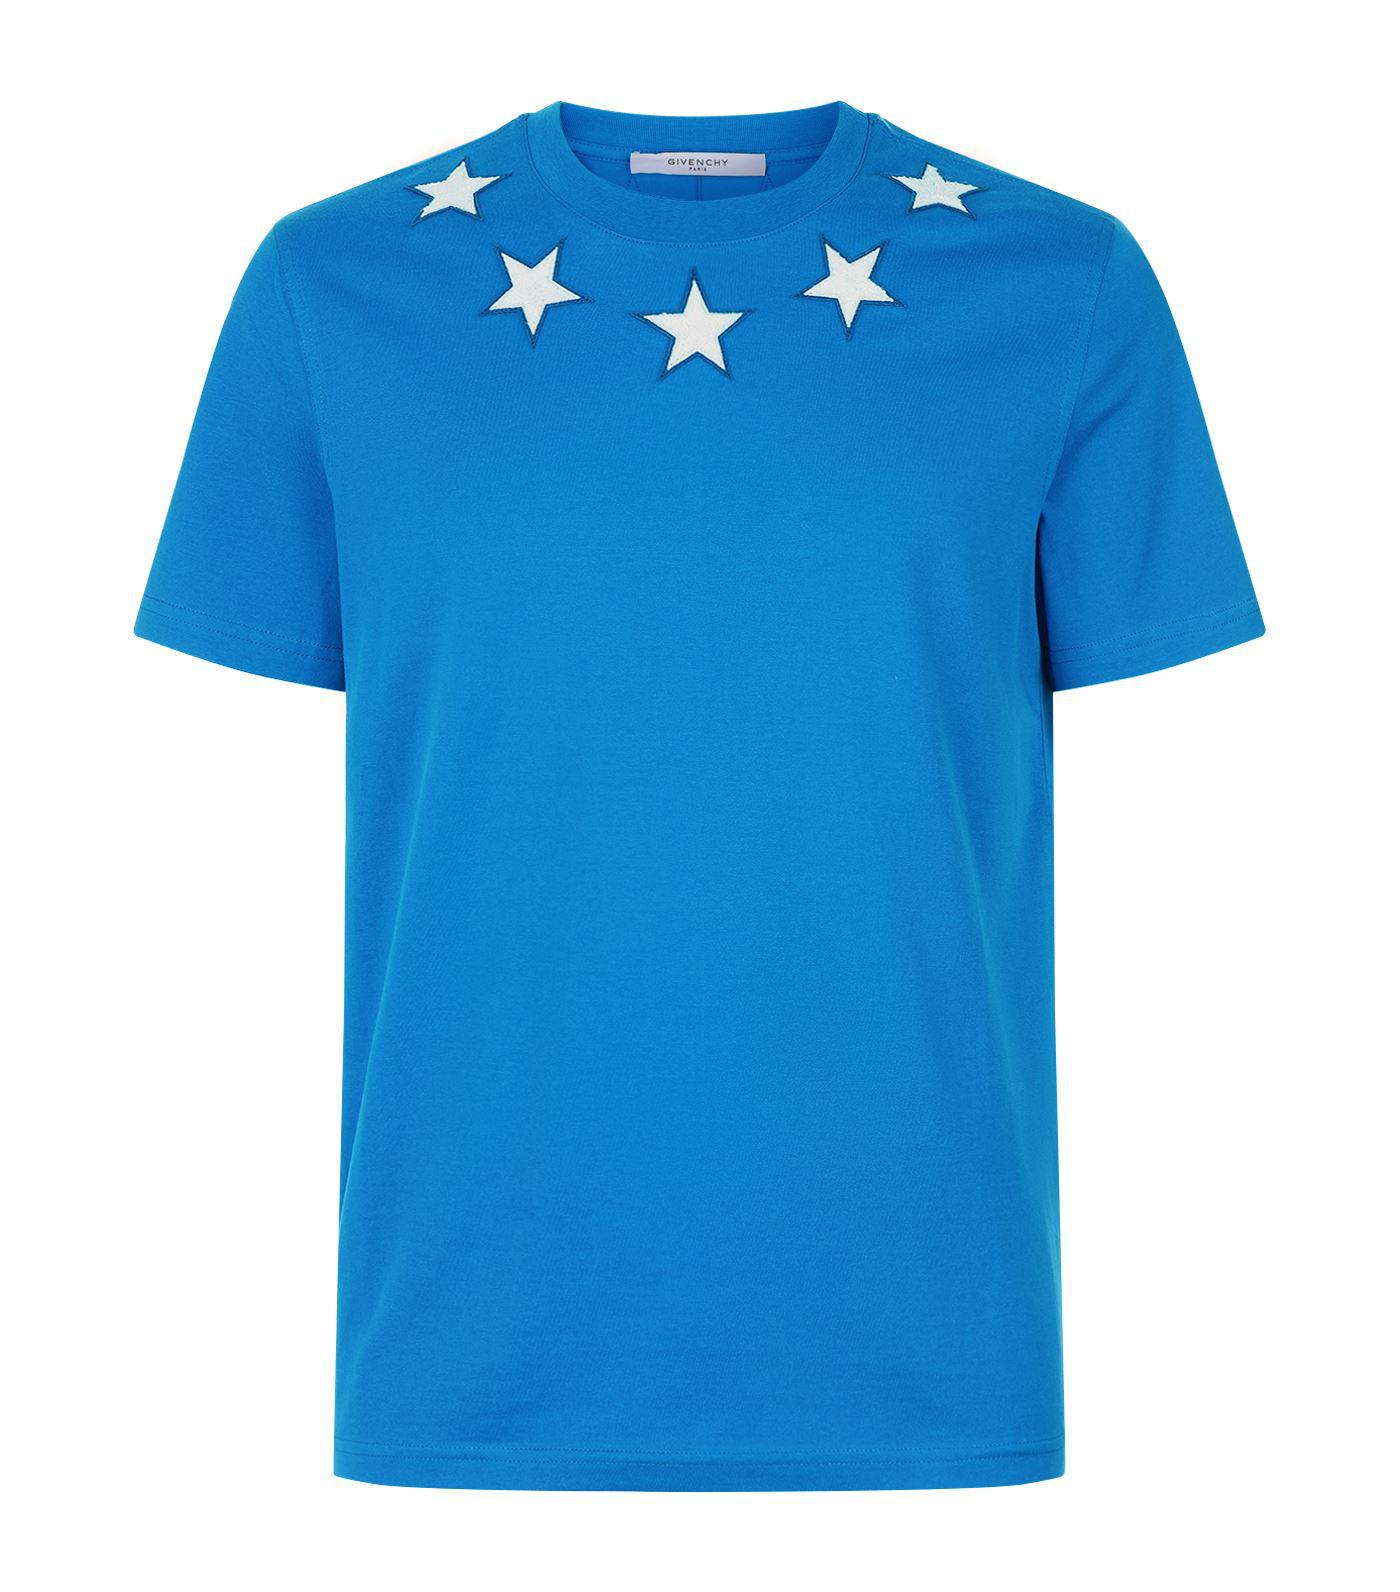 Lyst givenchy star appliqu t shirt in blue for men for Givenchy 5 star shirt